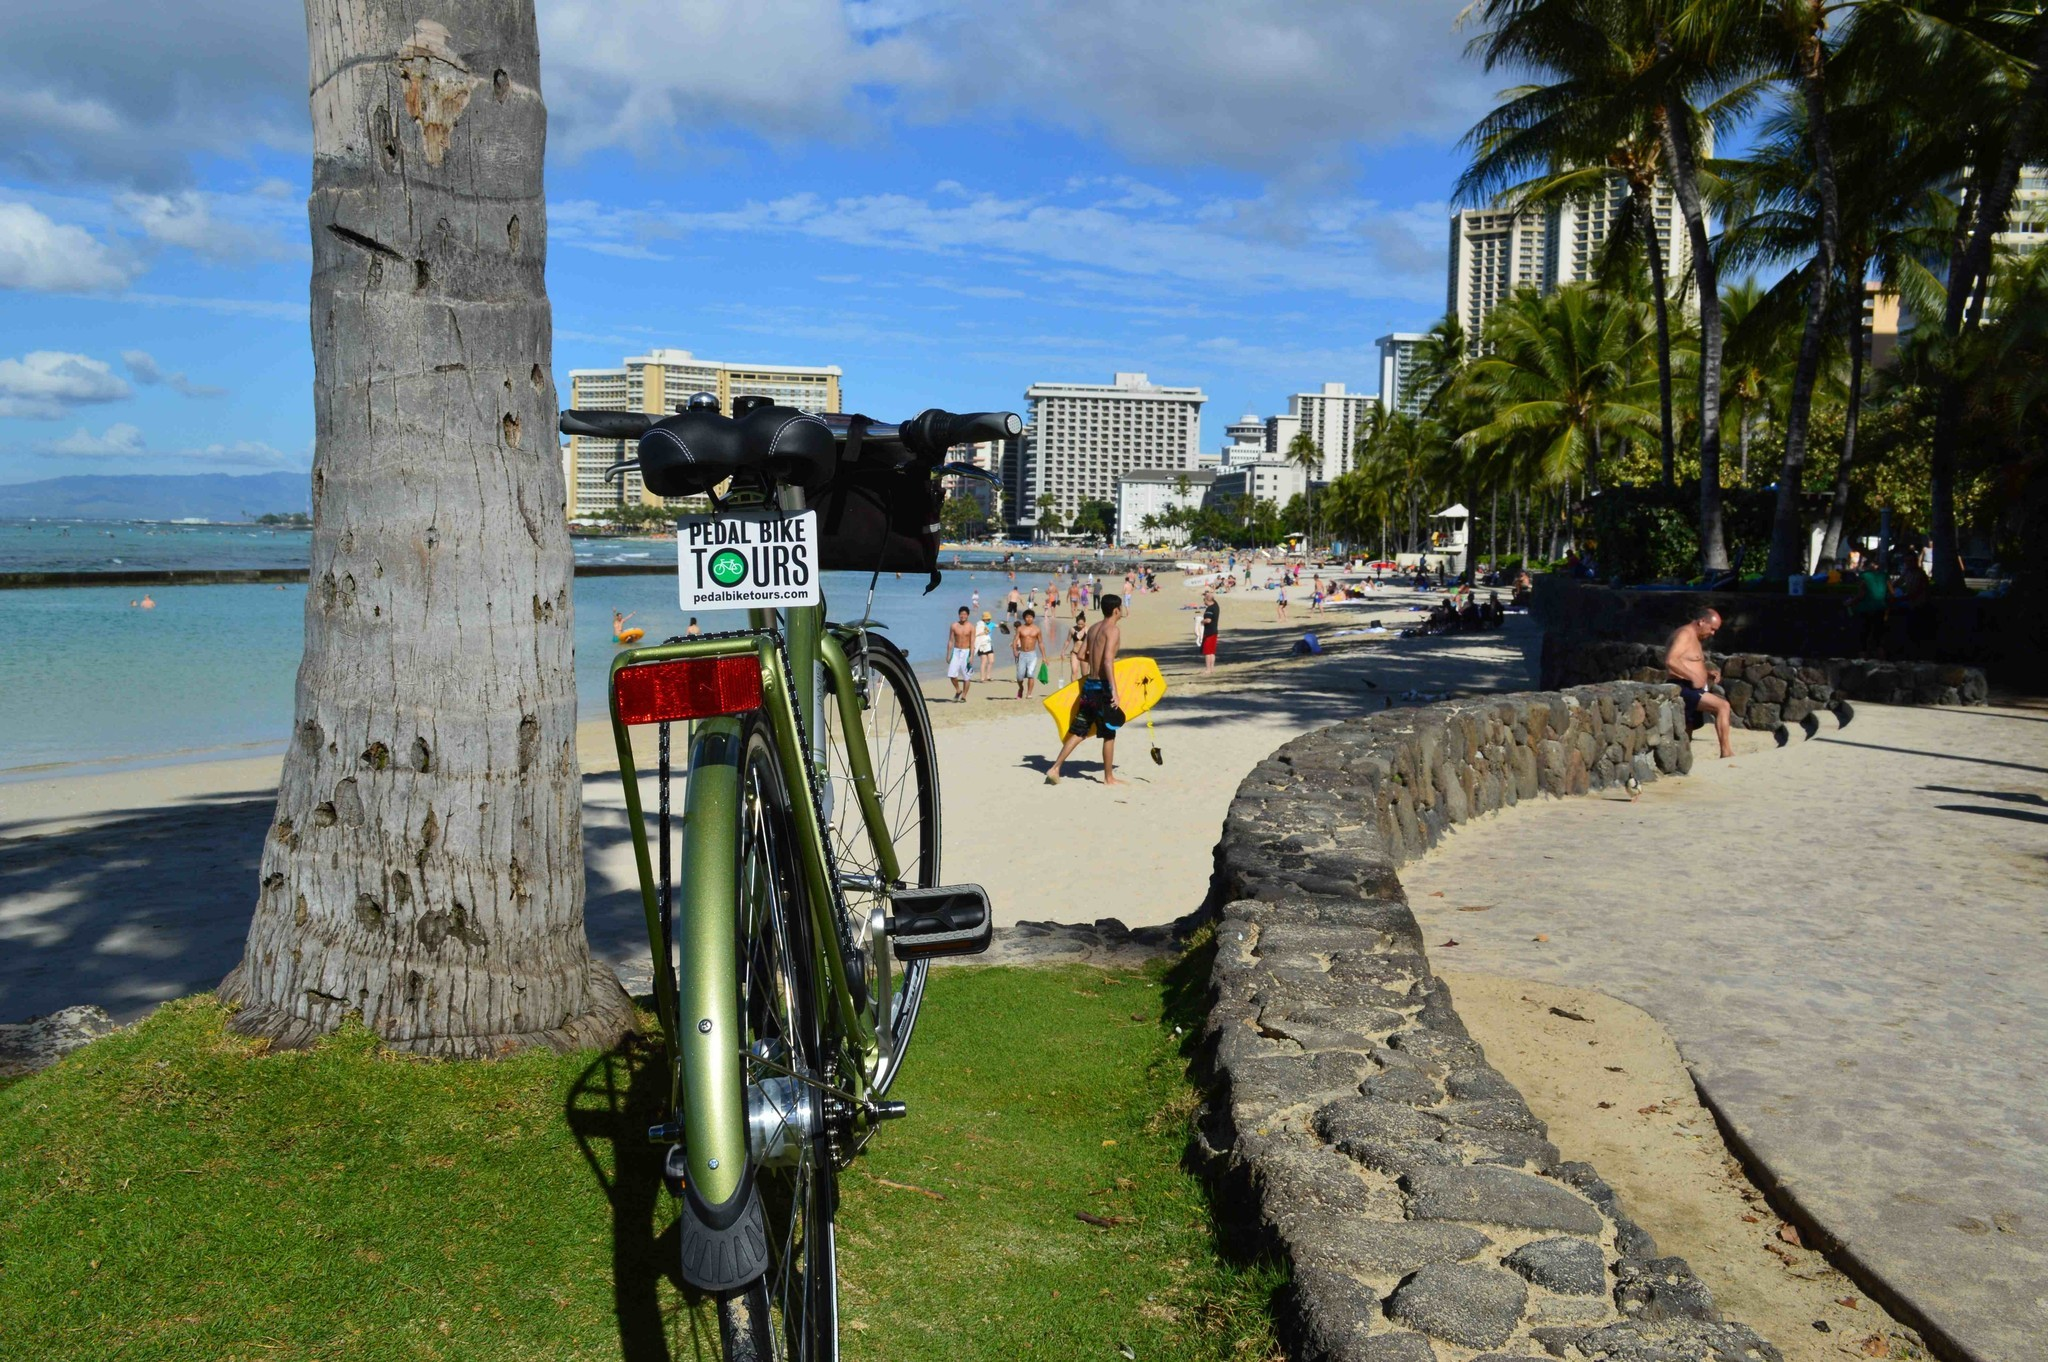 Hawaii Two Waikiki Hotels Bike Packages Help Guests Go